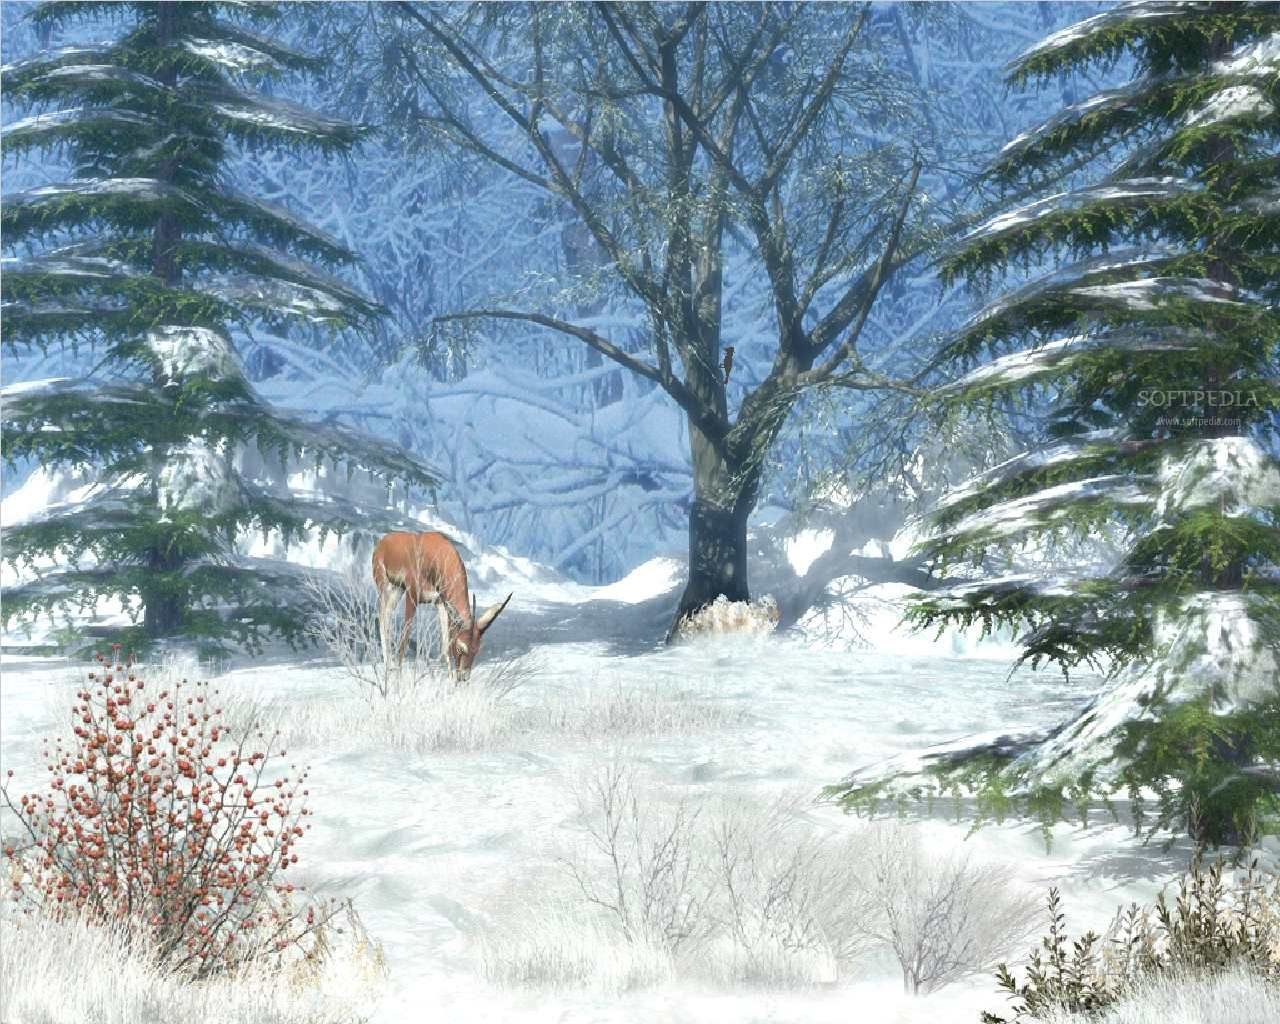 Free animated winter desktop wallpaper winter afternoon free animated winter desktop wallpaper winter afternoon animated wallpaper screenshot 1 this is voltagebd Image collections